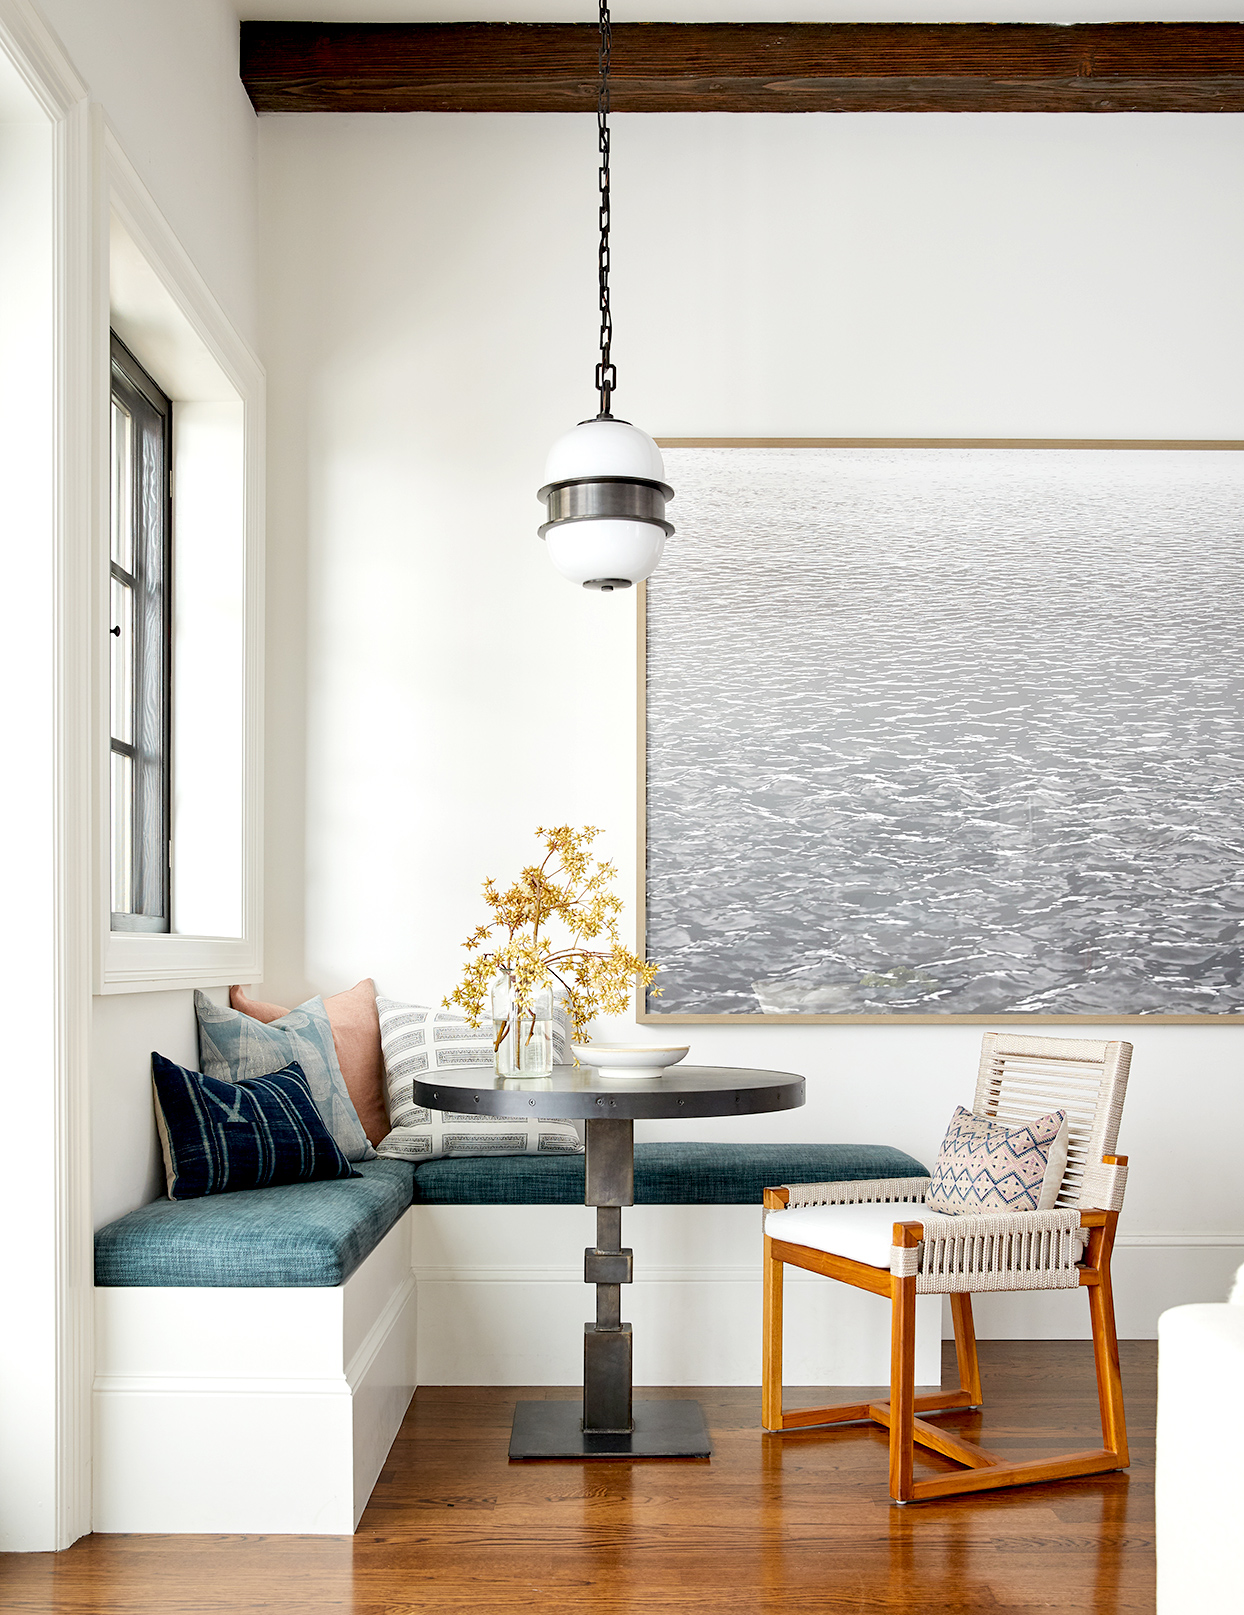 Nook with bench and chair seating